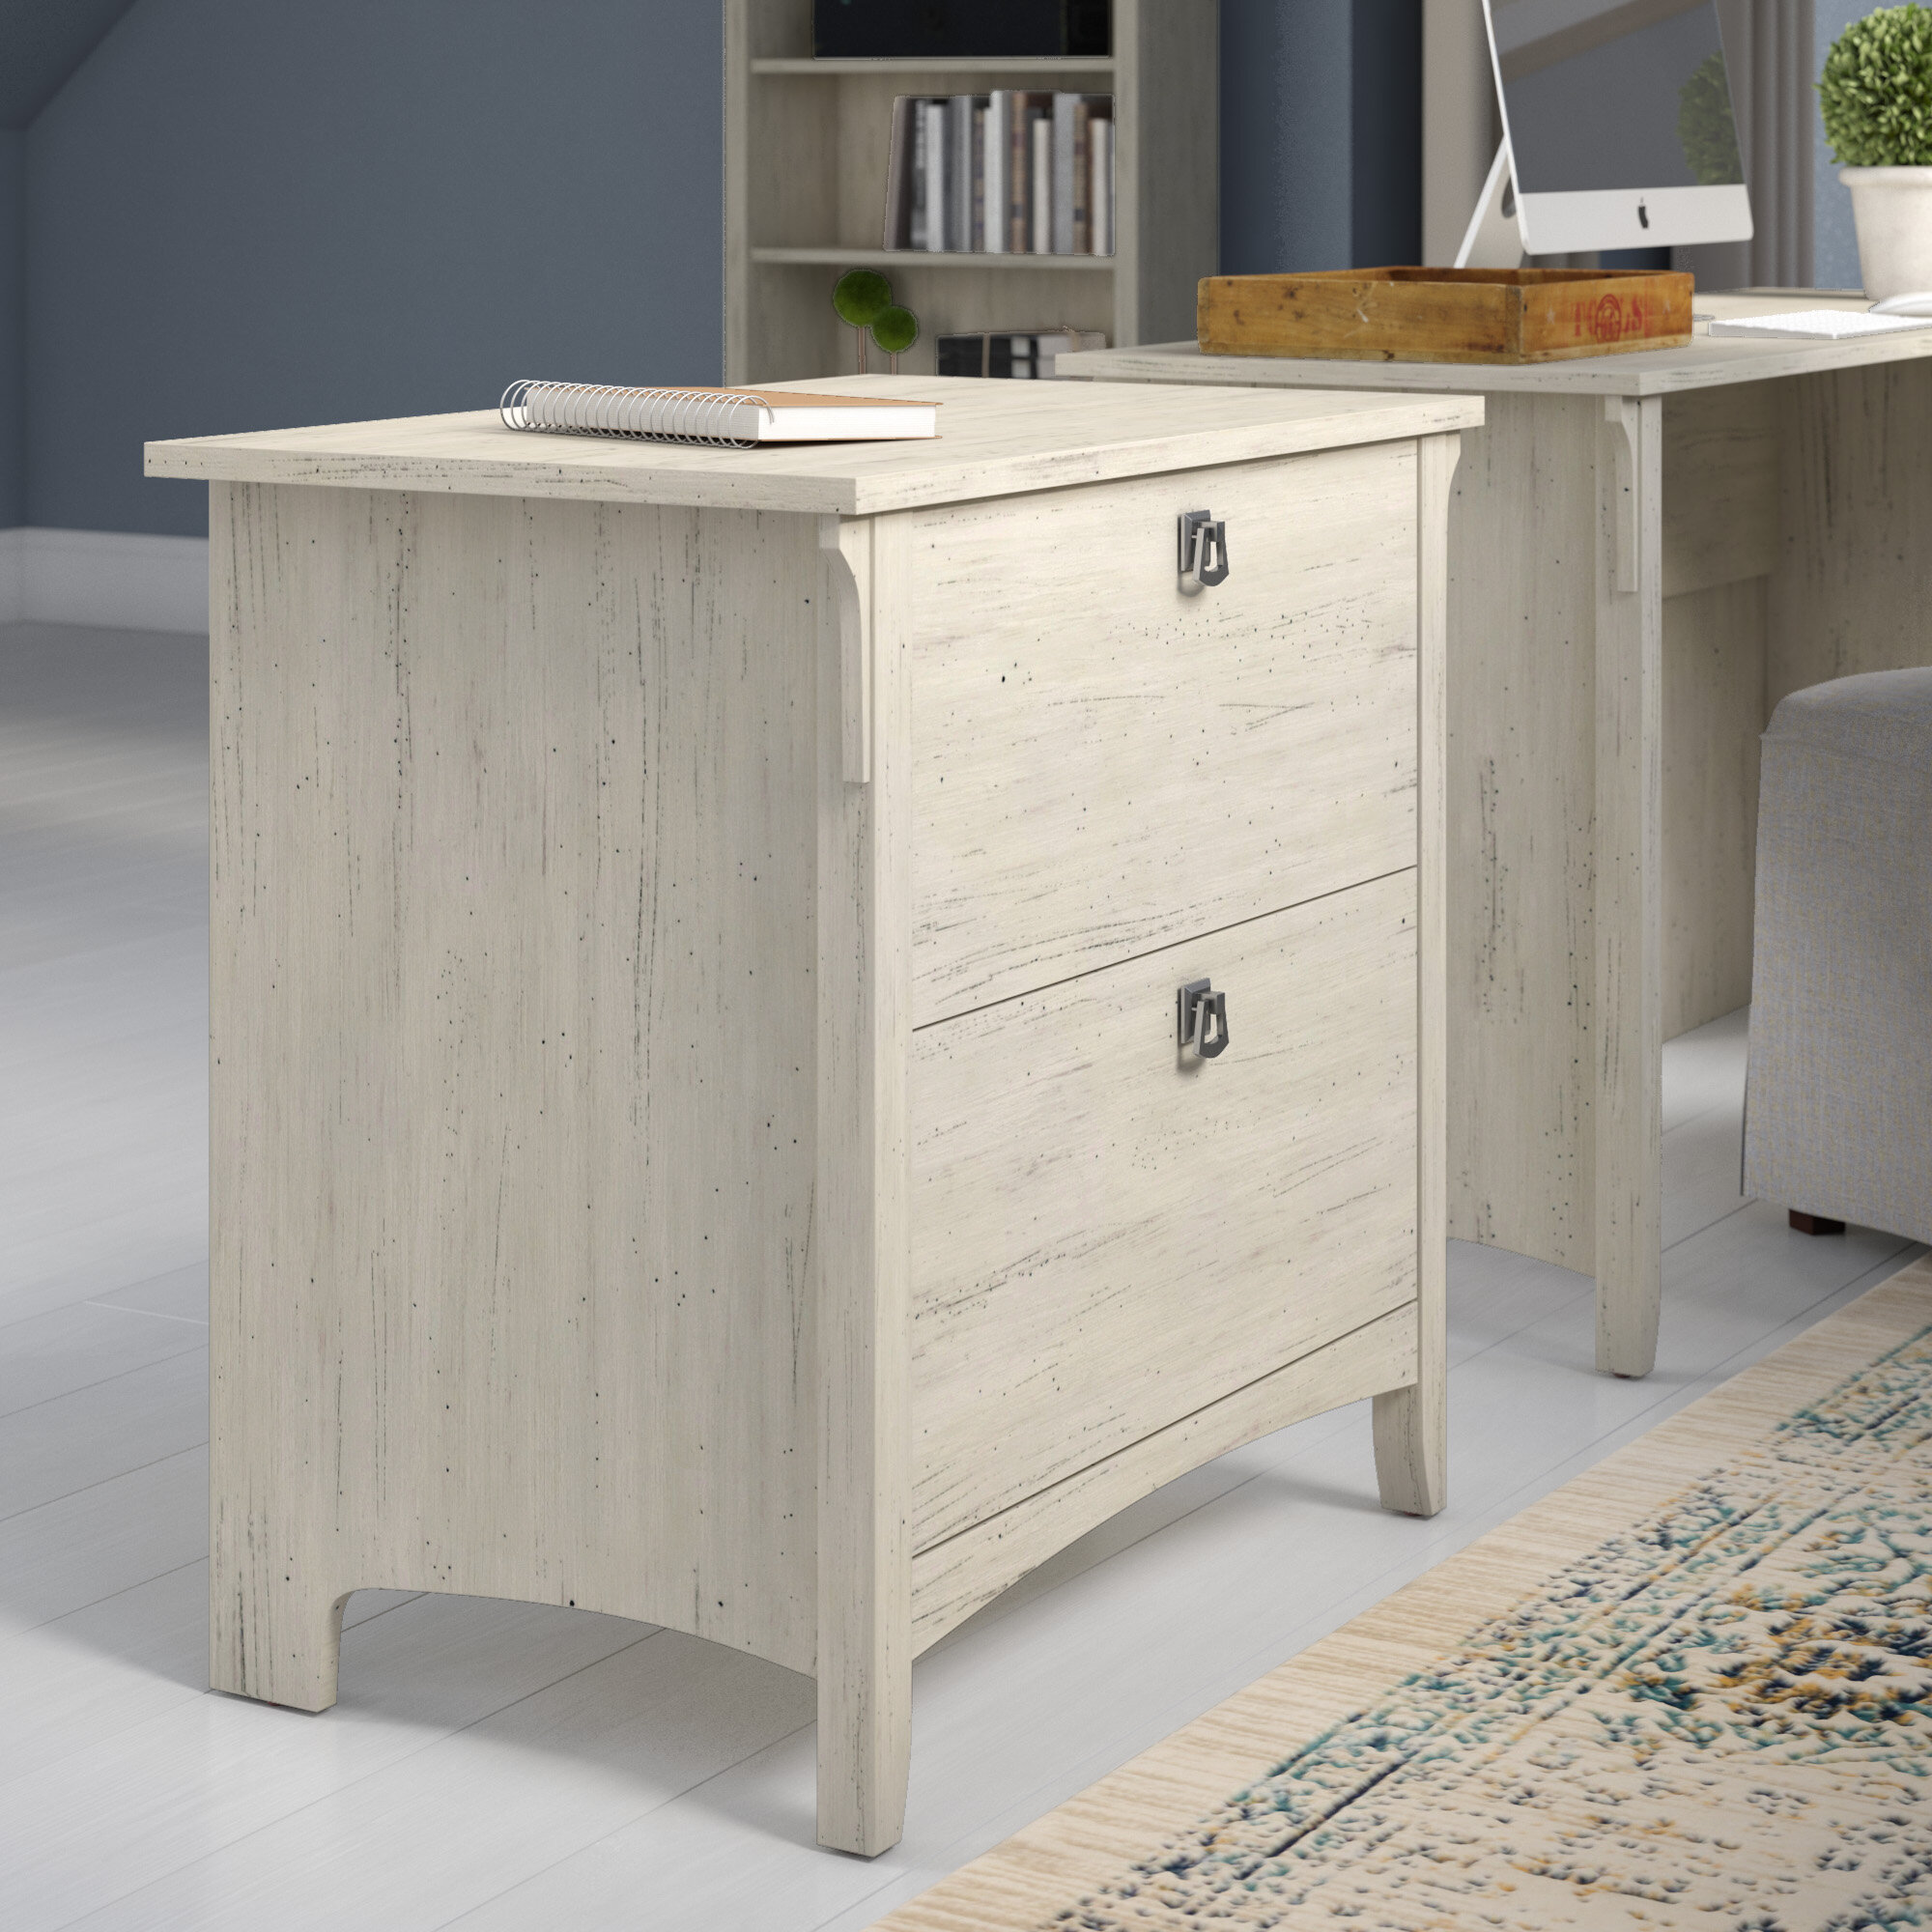 view catalina filing jsp cabinet home furniture rcwilley white rc cabinets store lateral willey office modern nightstand file